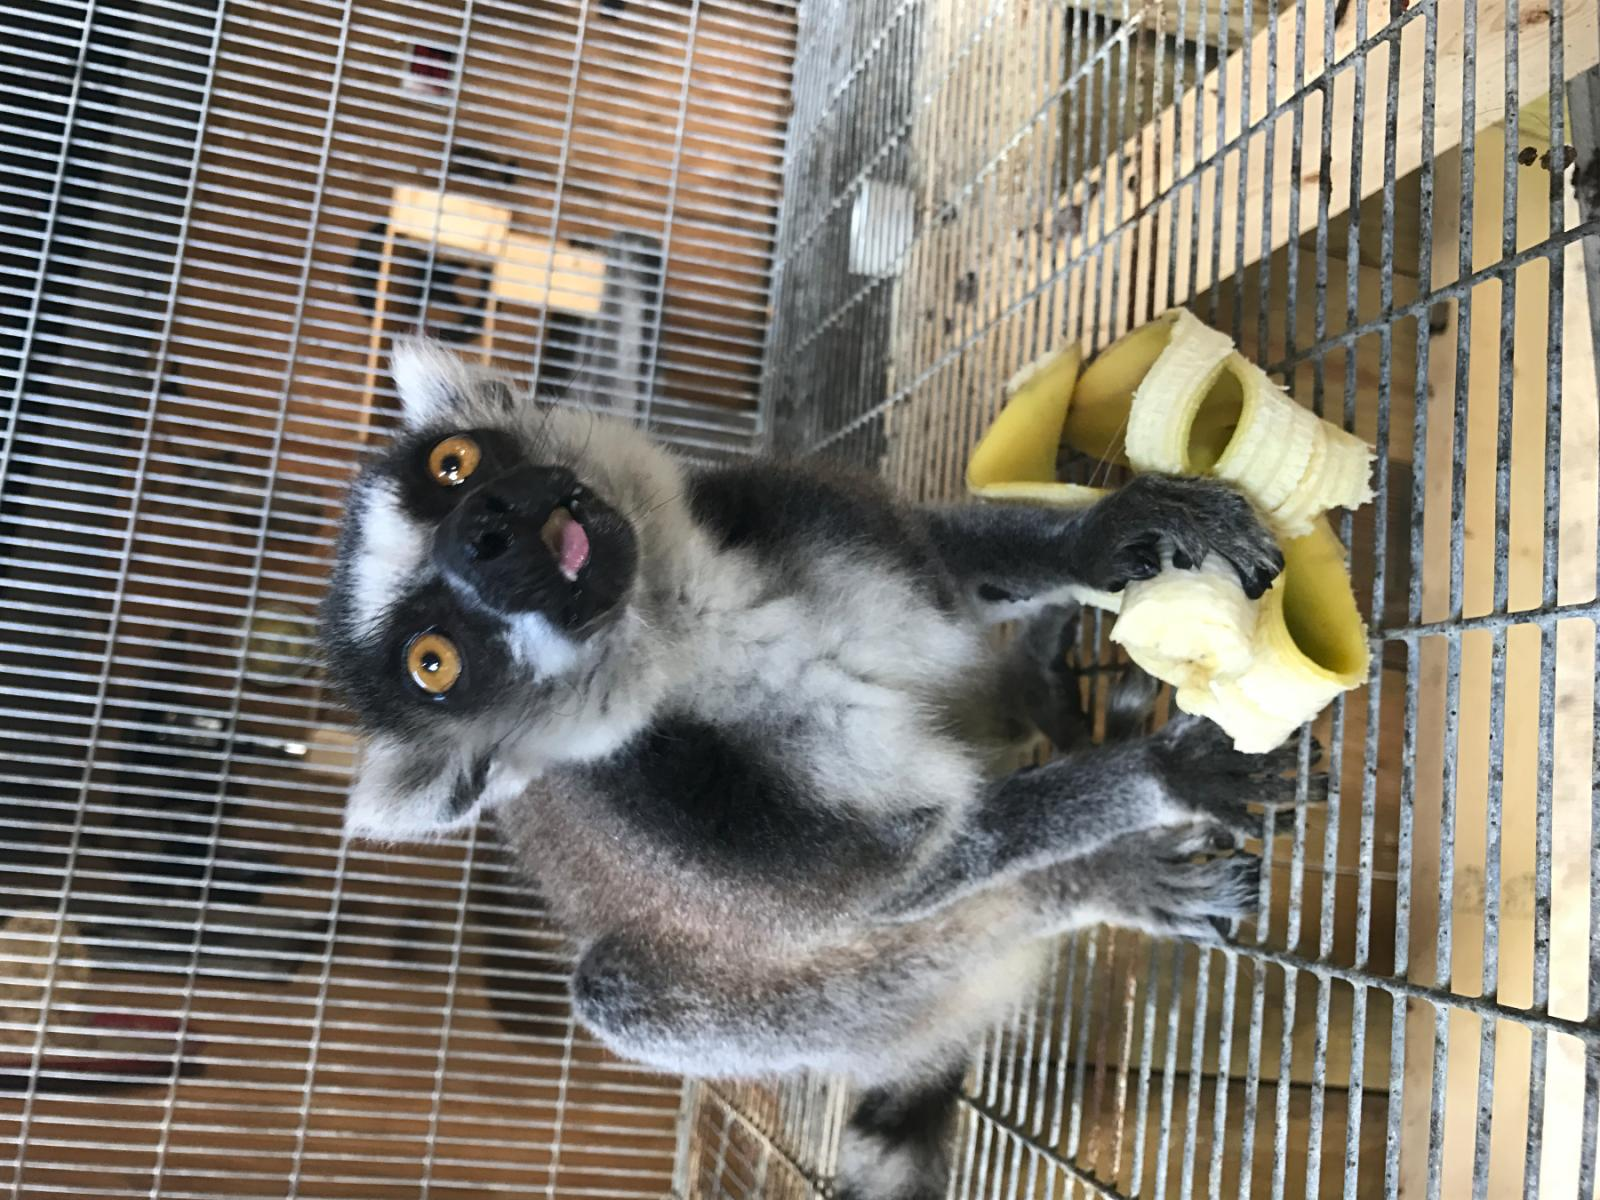 Exotic Animal Auction, Tampa FL - Sep 23, 2017 - 11:00 AM